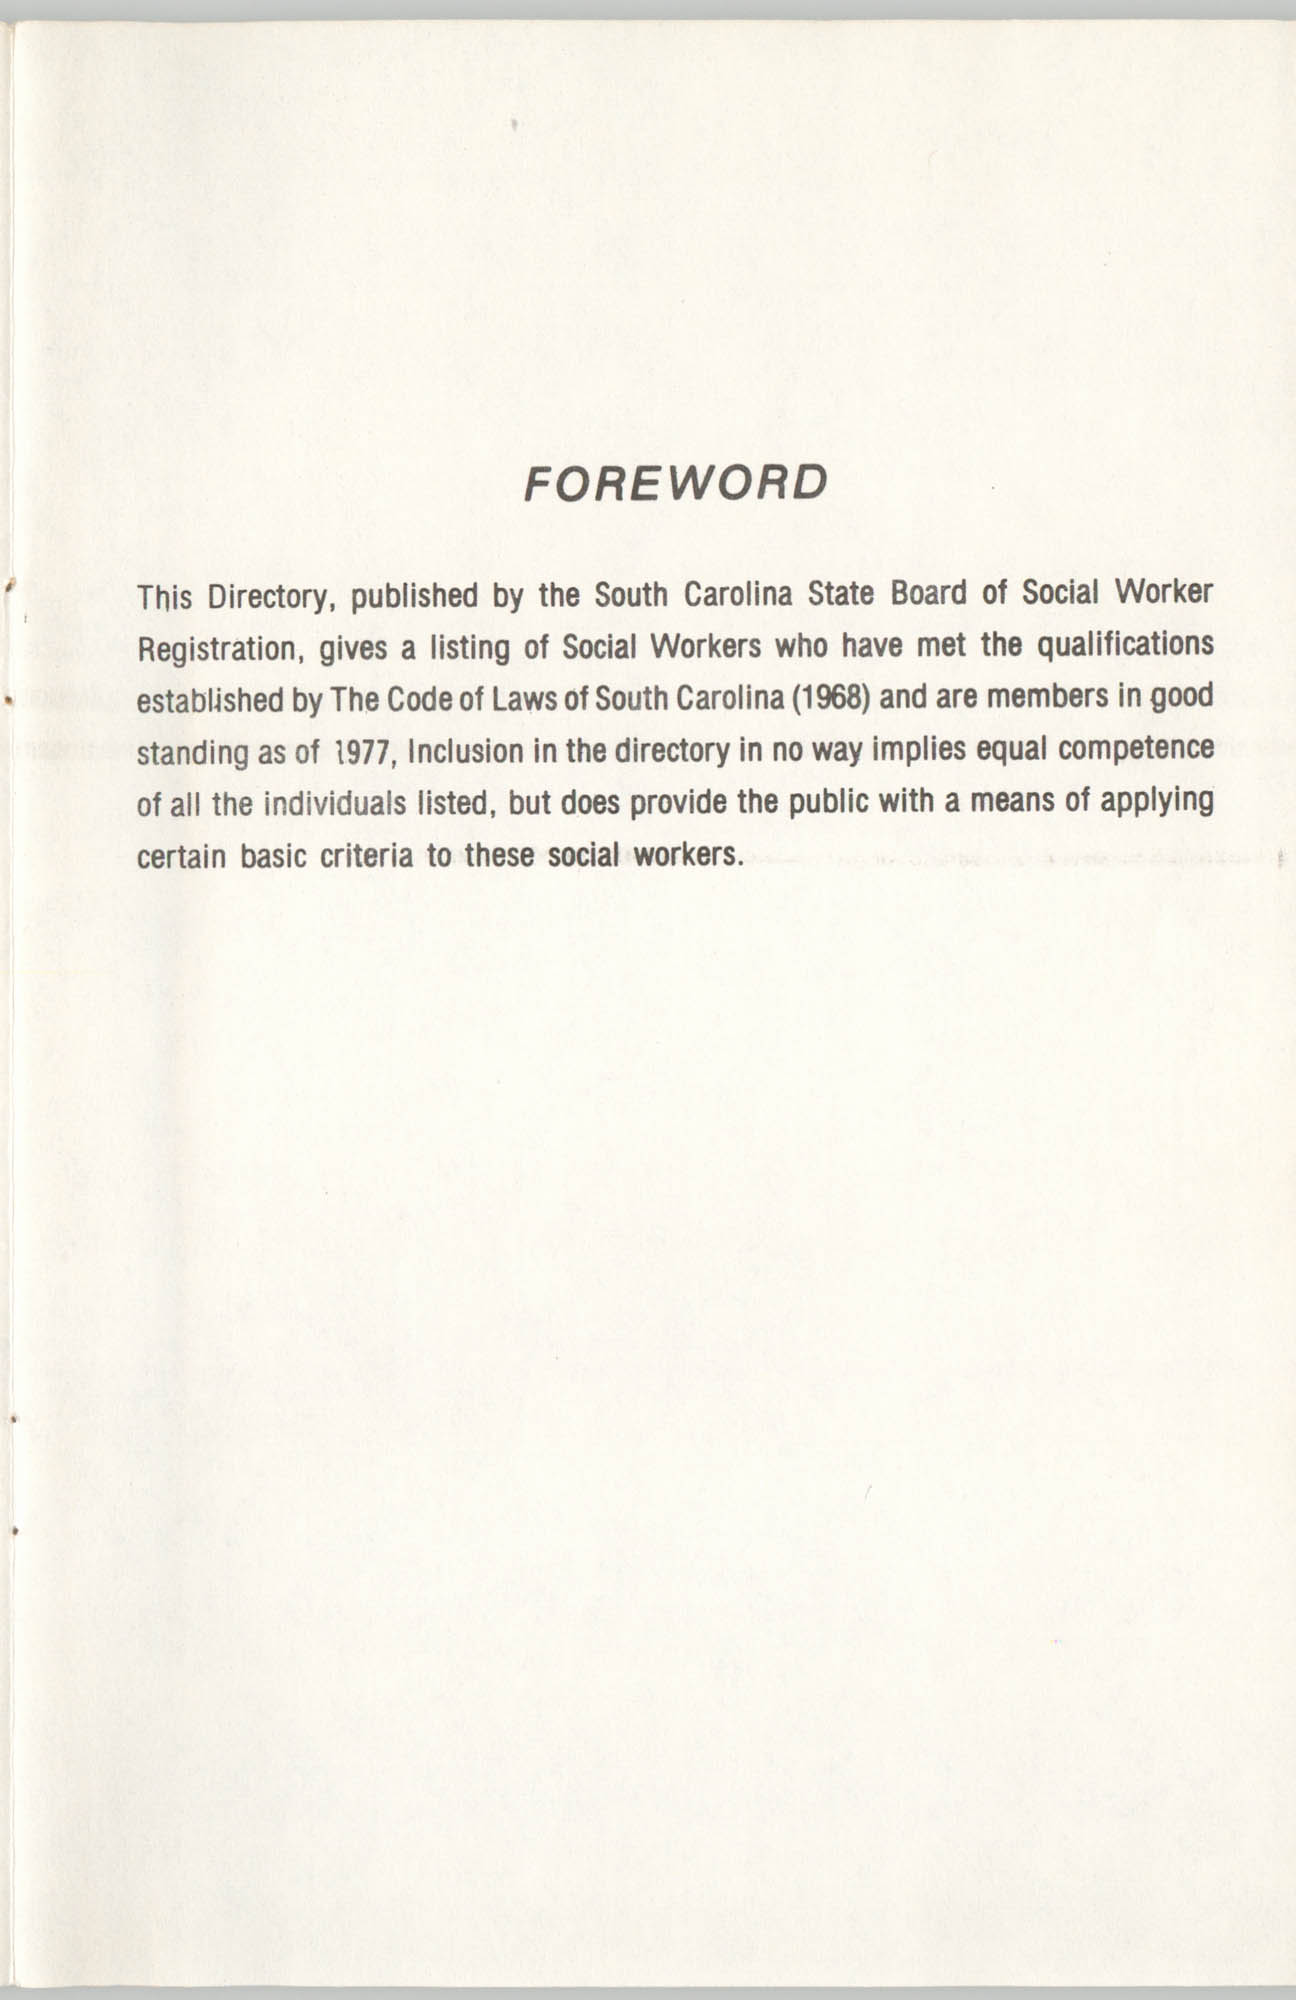 State of South Carolina Directory of Registered Social Workers, 1977, Forward